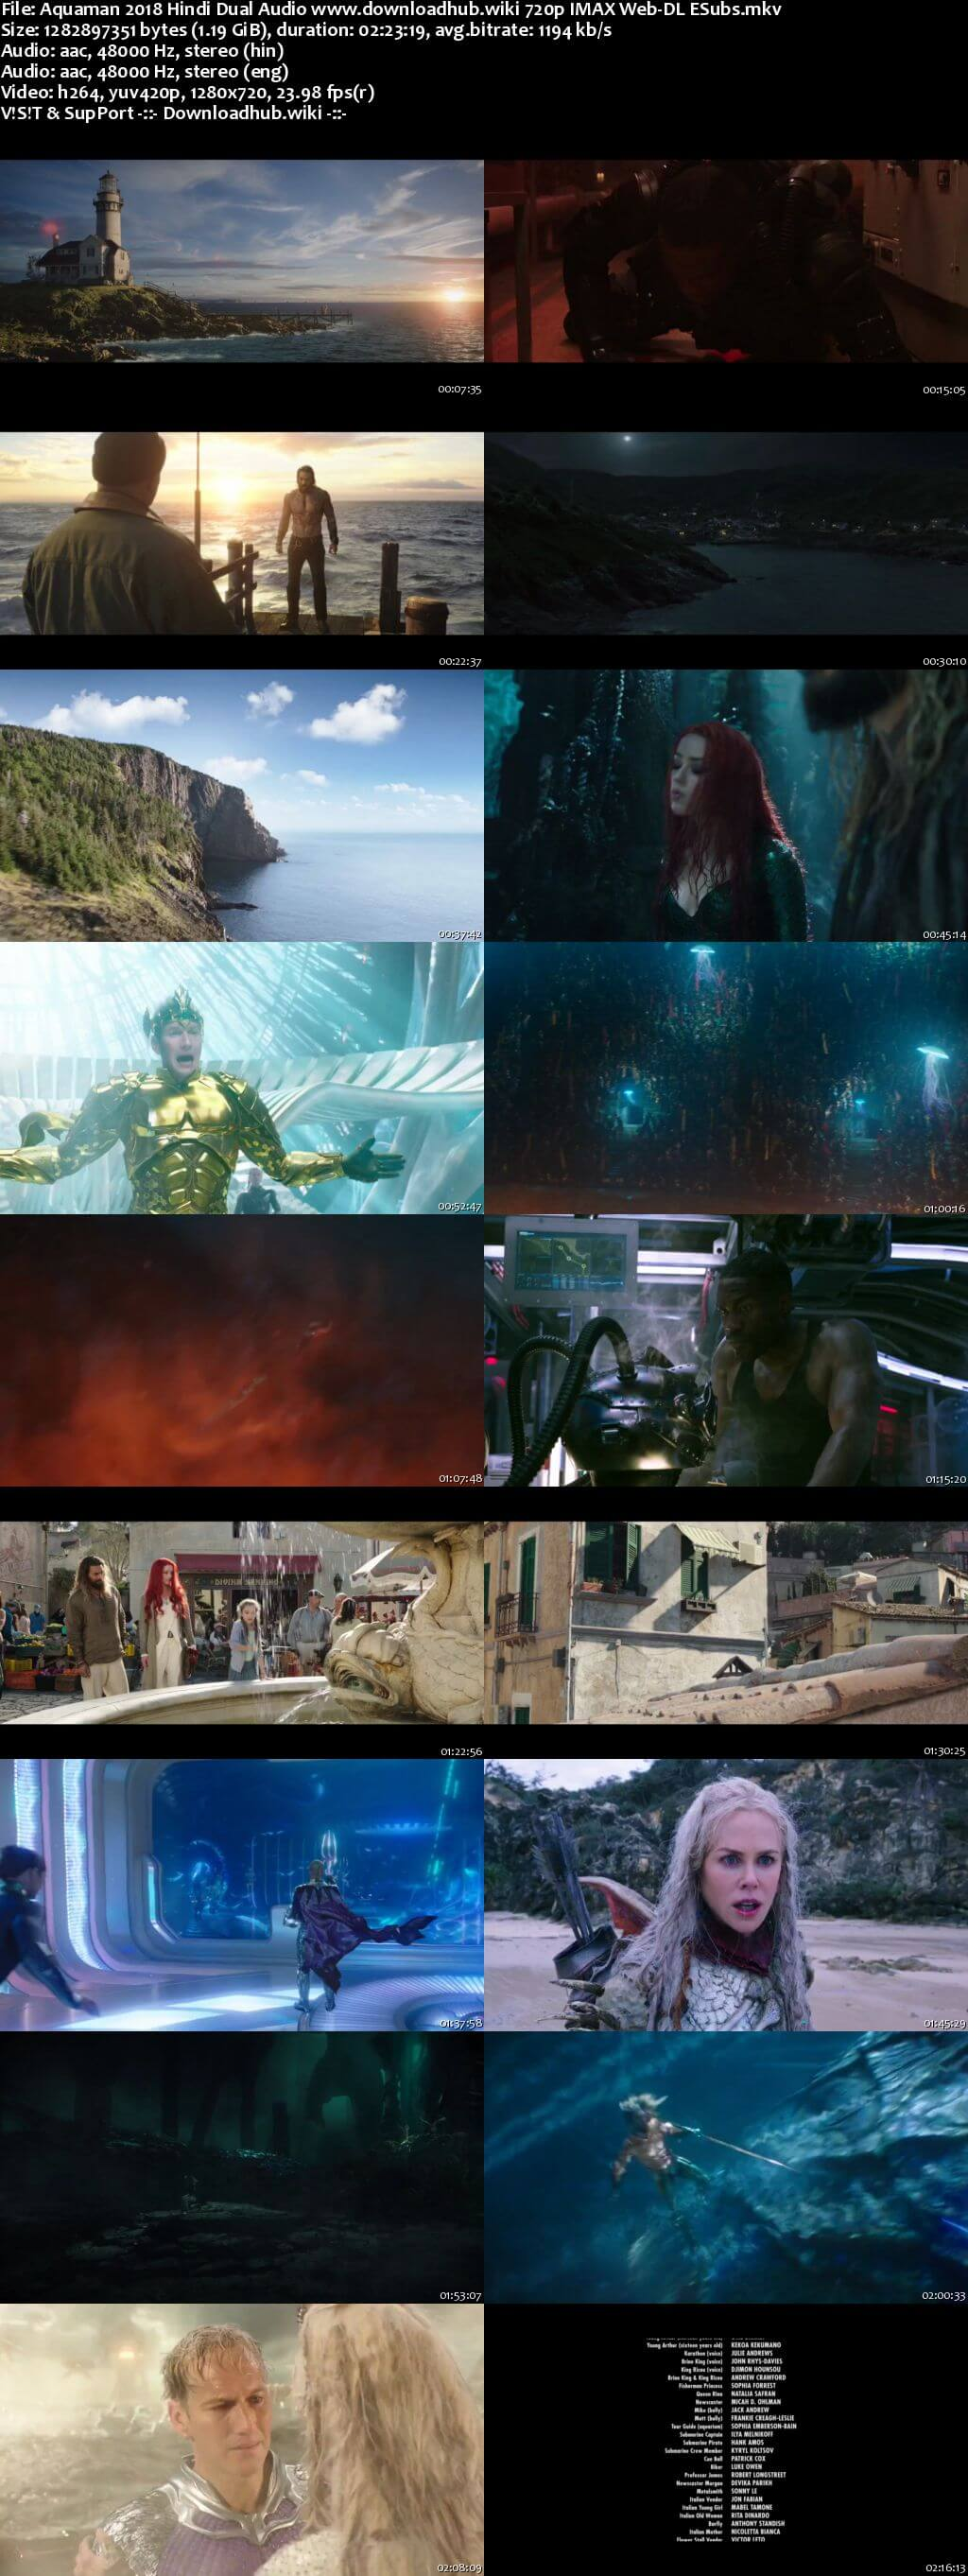 Aquaman 2018 Hindi Dual Audio 720p IMAX Web-DL ESubs